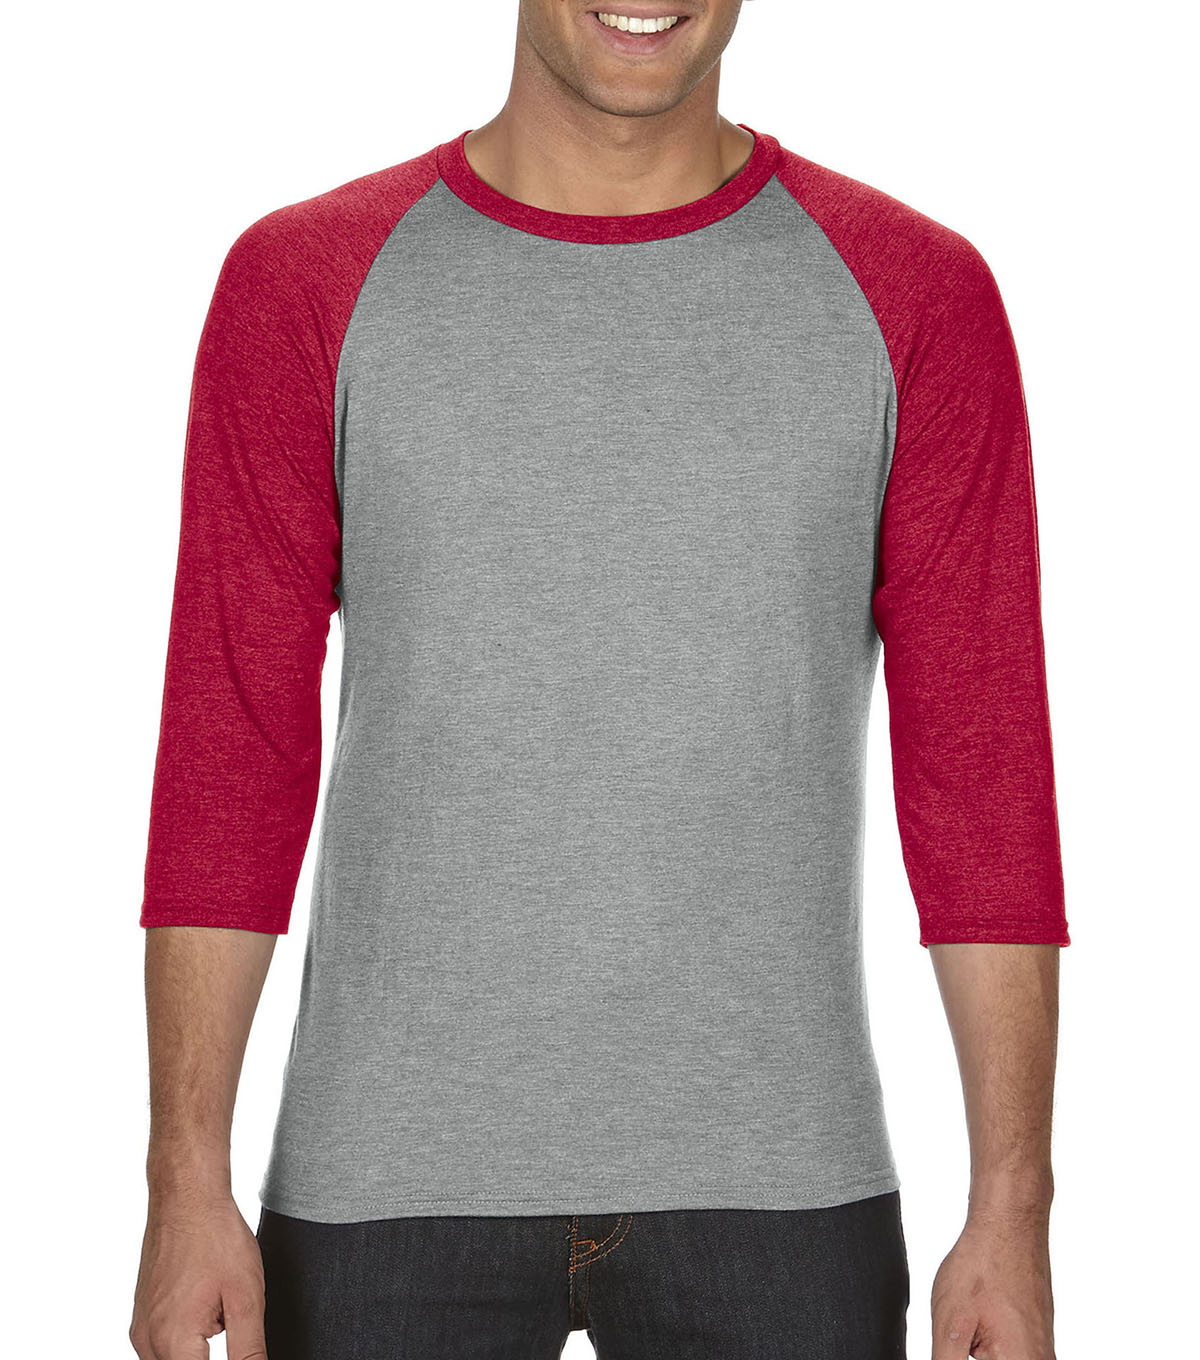 Anvil Extra Large Adult Raglan Shirt, Grey/red